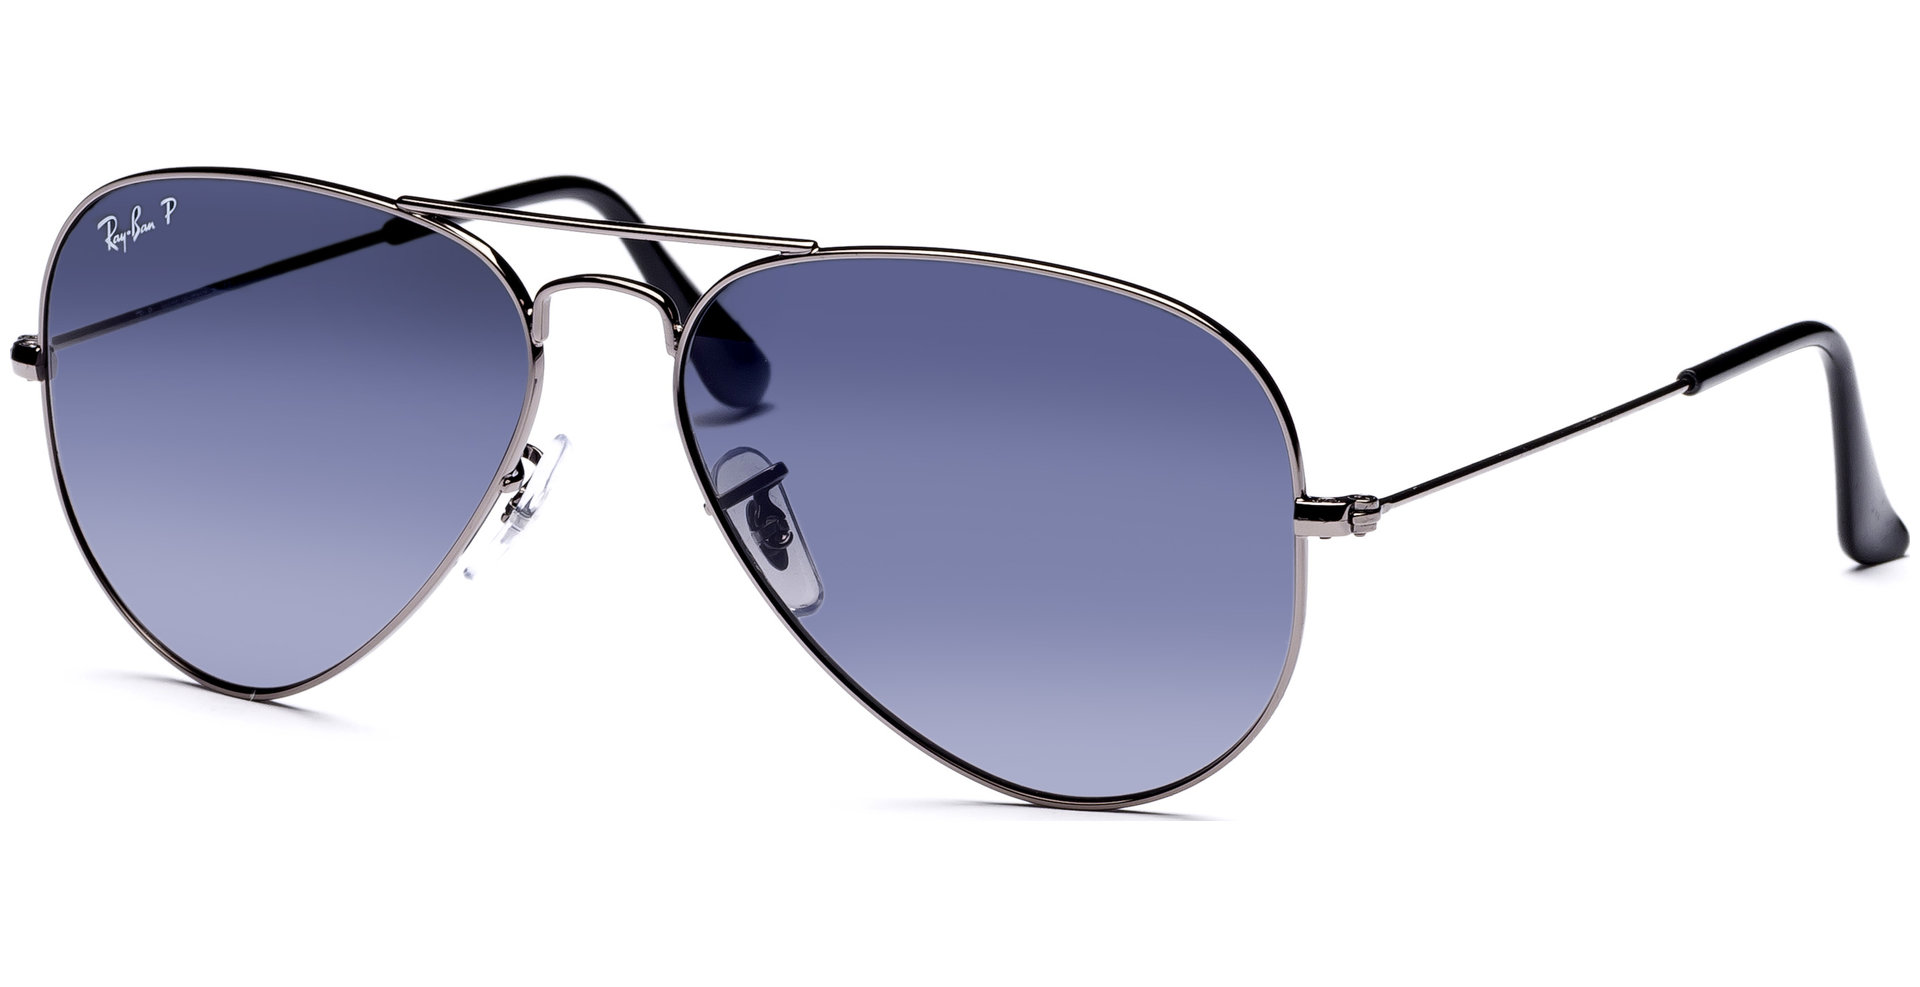 ray ban aviator metal rb3025  Ray-Ban - Aviator Large Metal RB3025 004/78 5814 Gunmetal/Cyl Pol ...